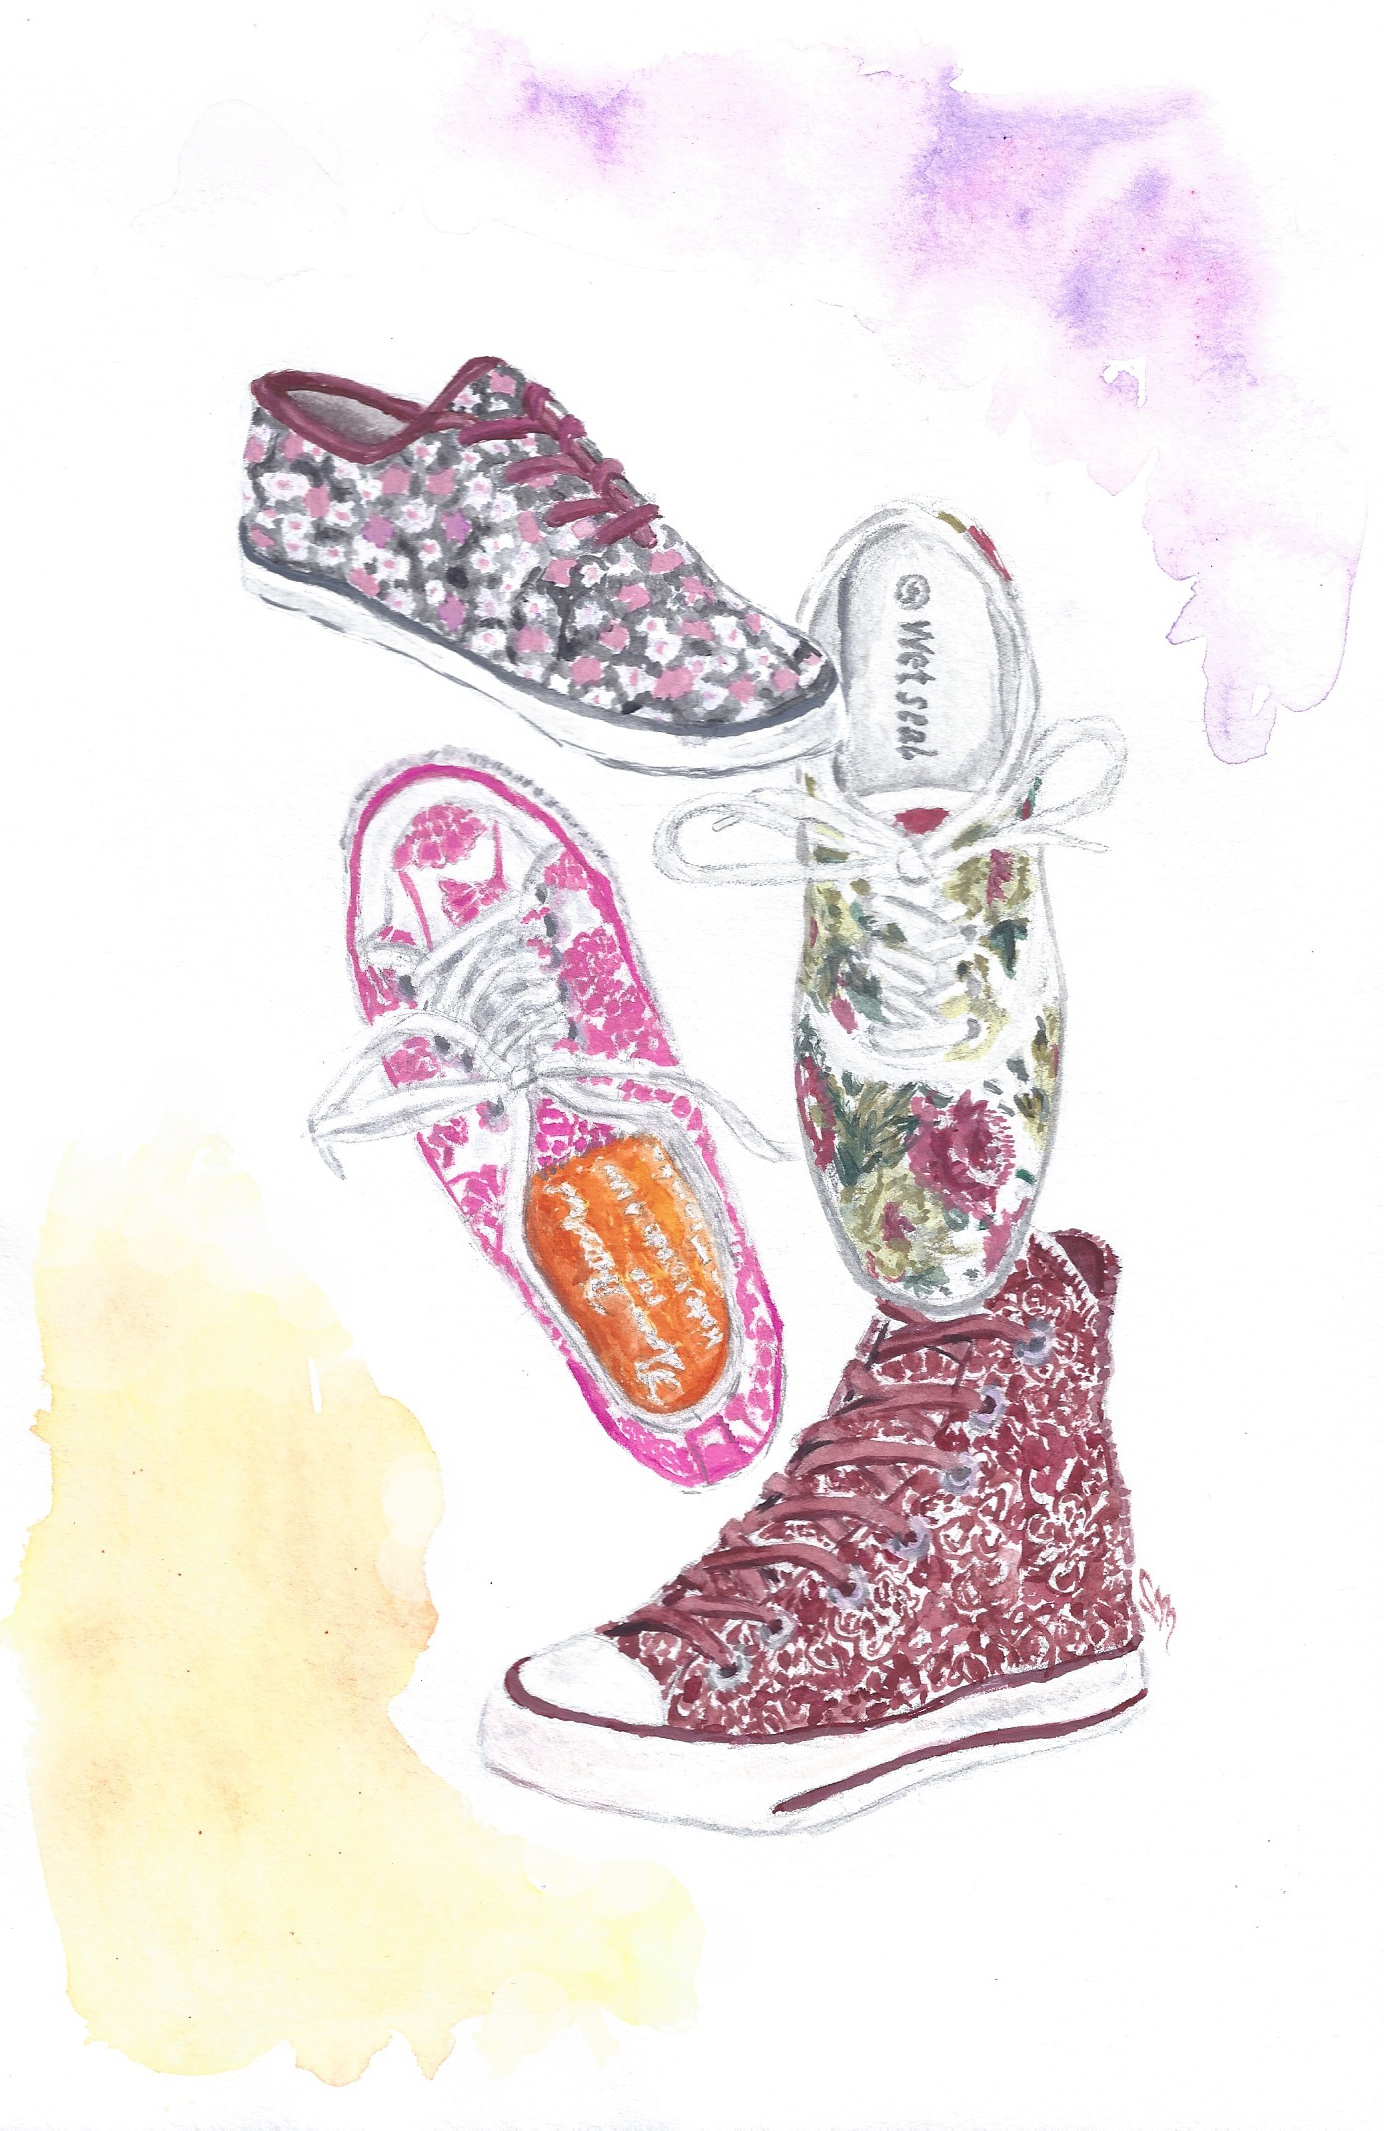 Obsession of the Moment: Floral Sneakers